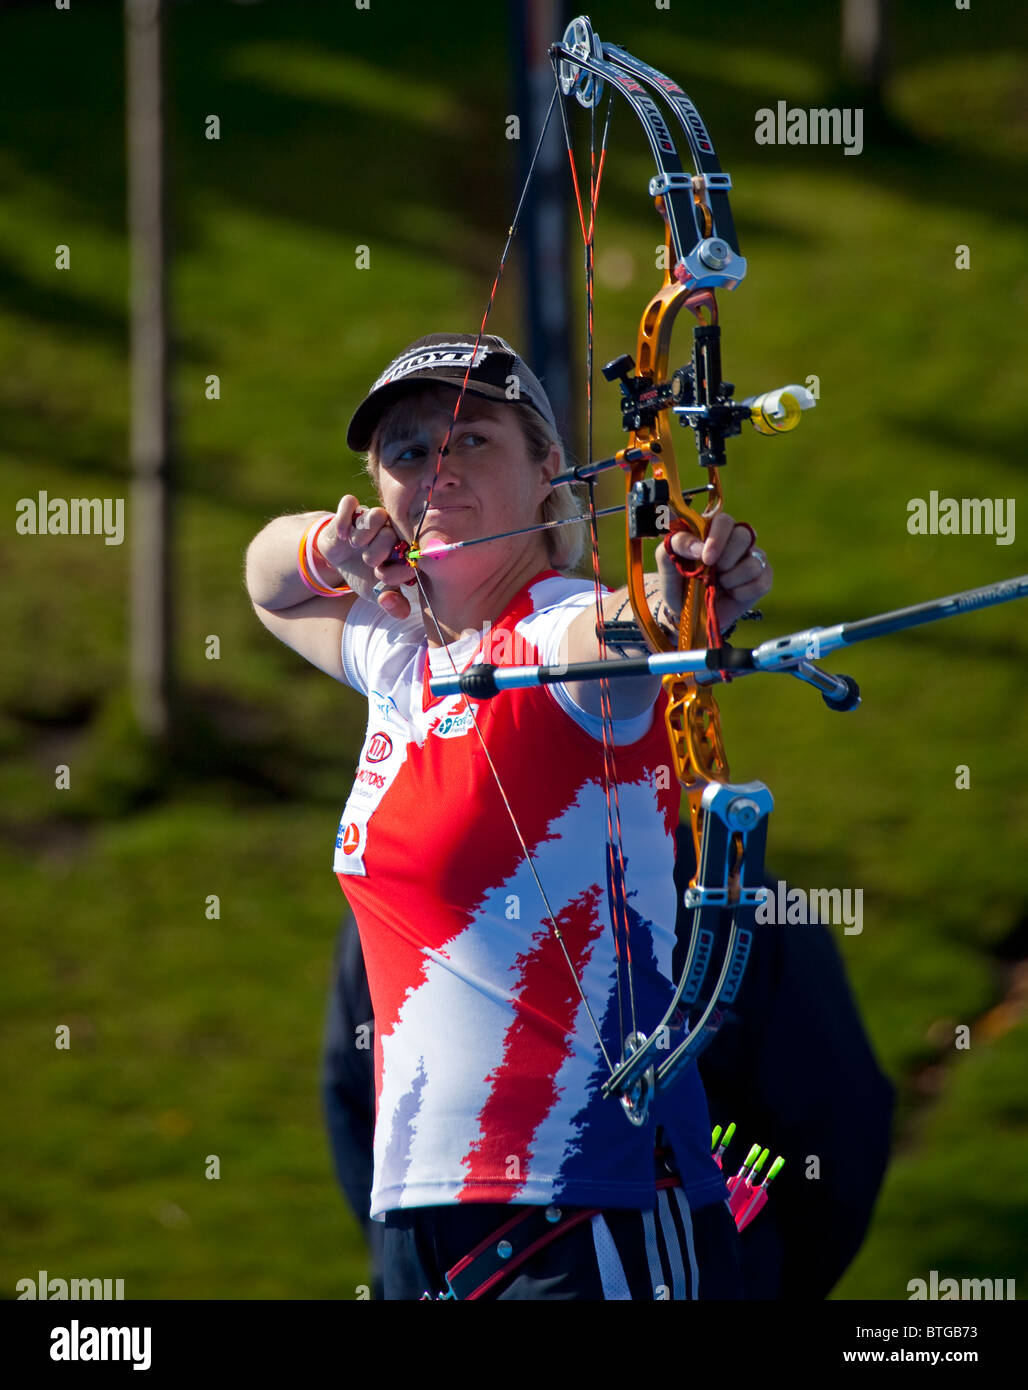 Andrea Gales  Uk Archer with Compound Bow, Archery World Cup event, Edinburgh, Scotland UK, Europe - Stock Image